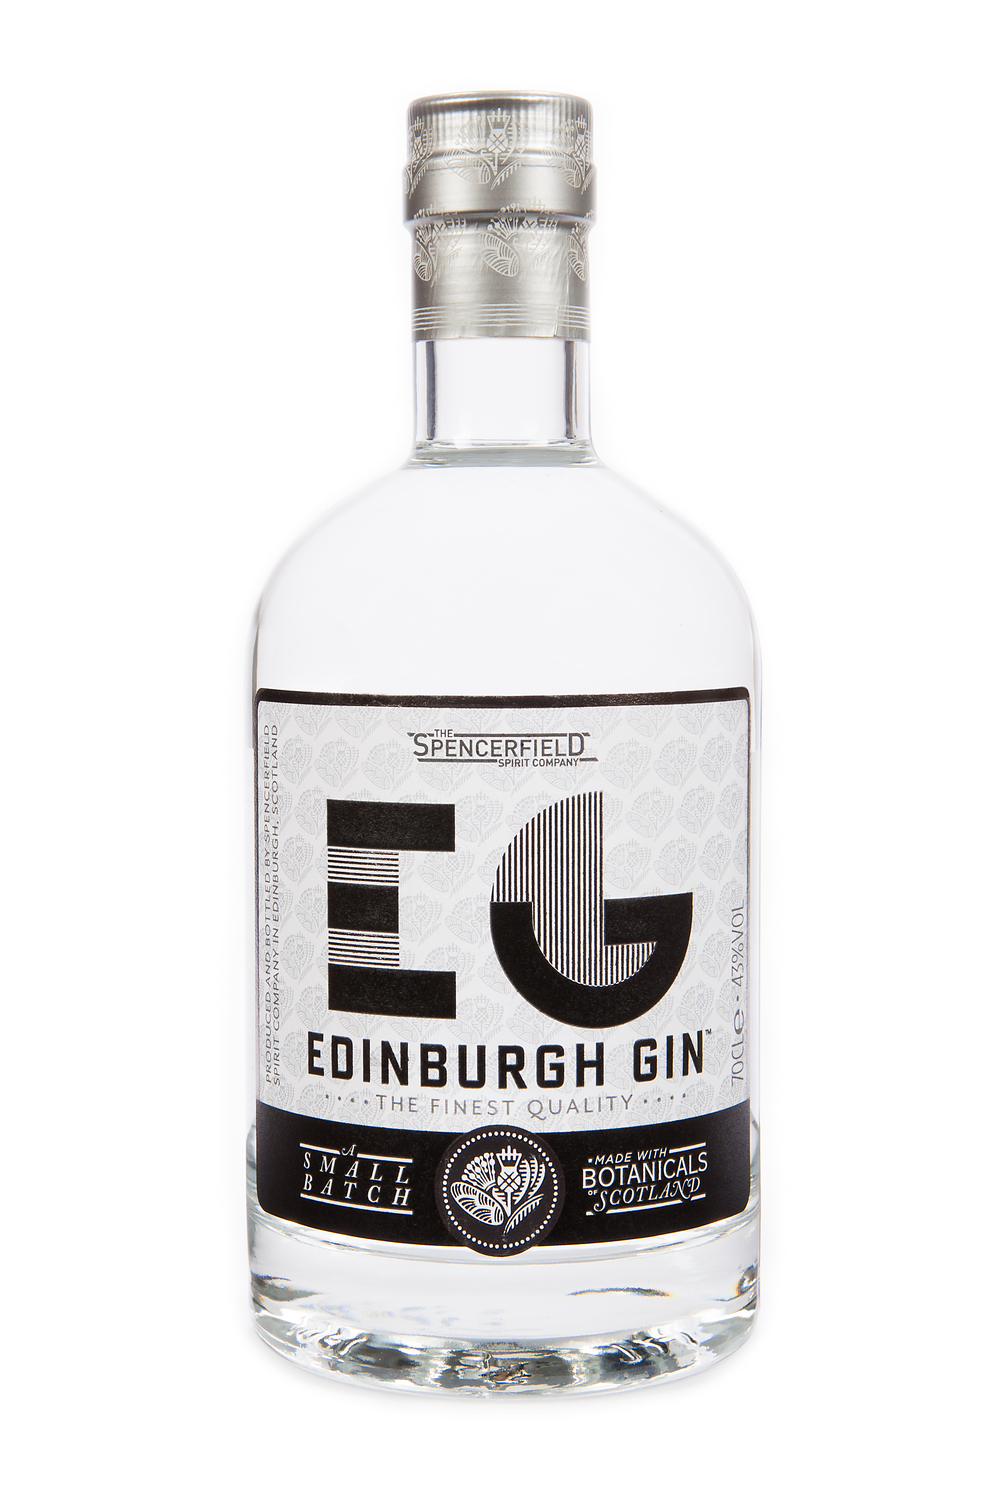 Photo Courtesy of Edinburgh Gin